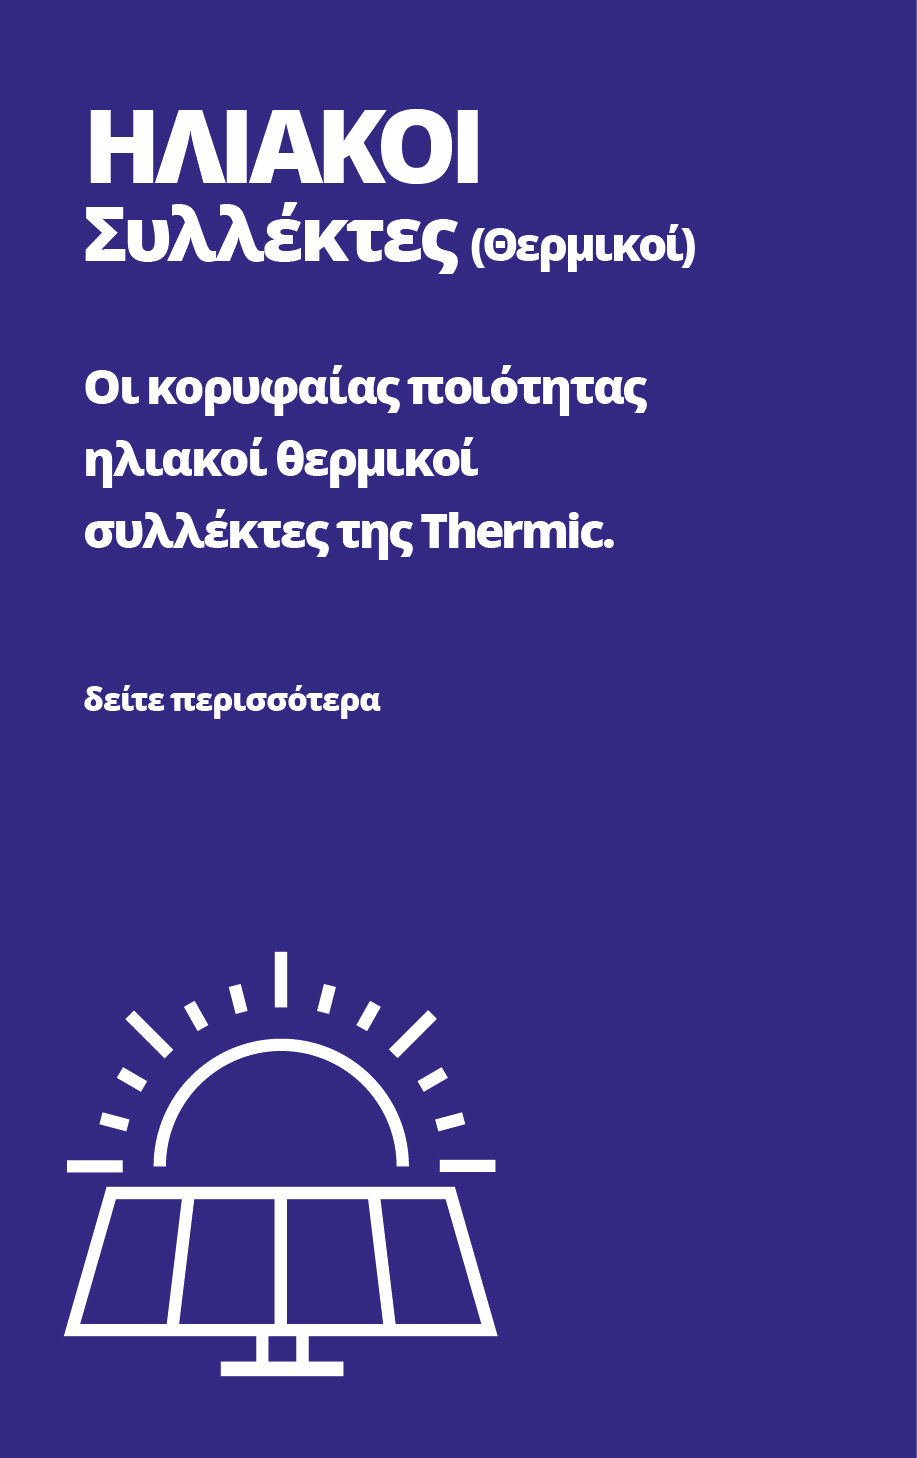 thermic-products-02